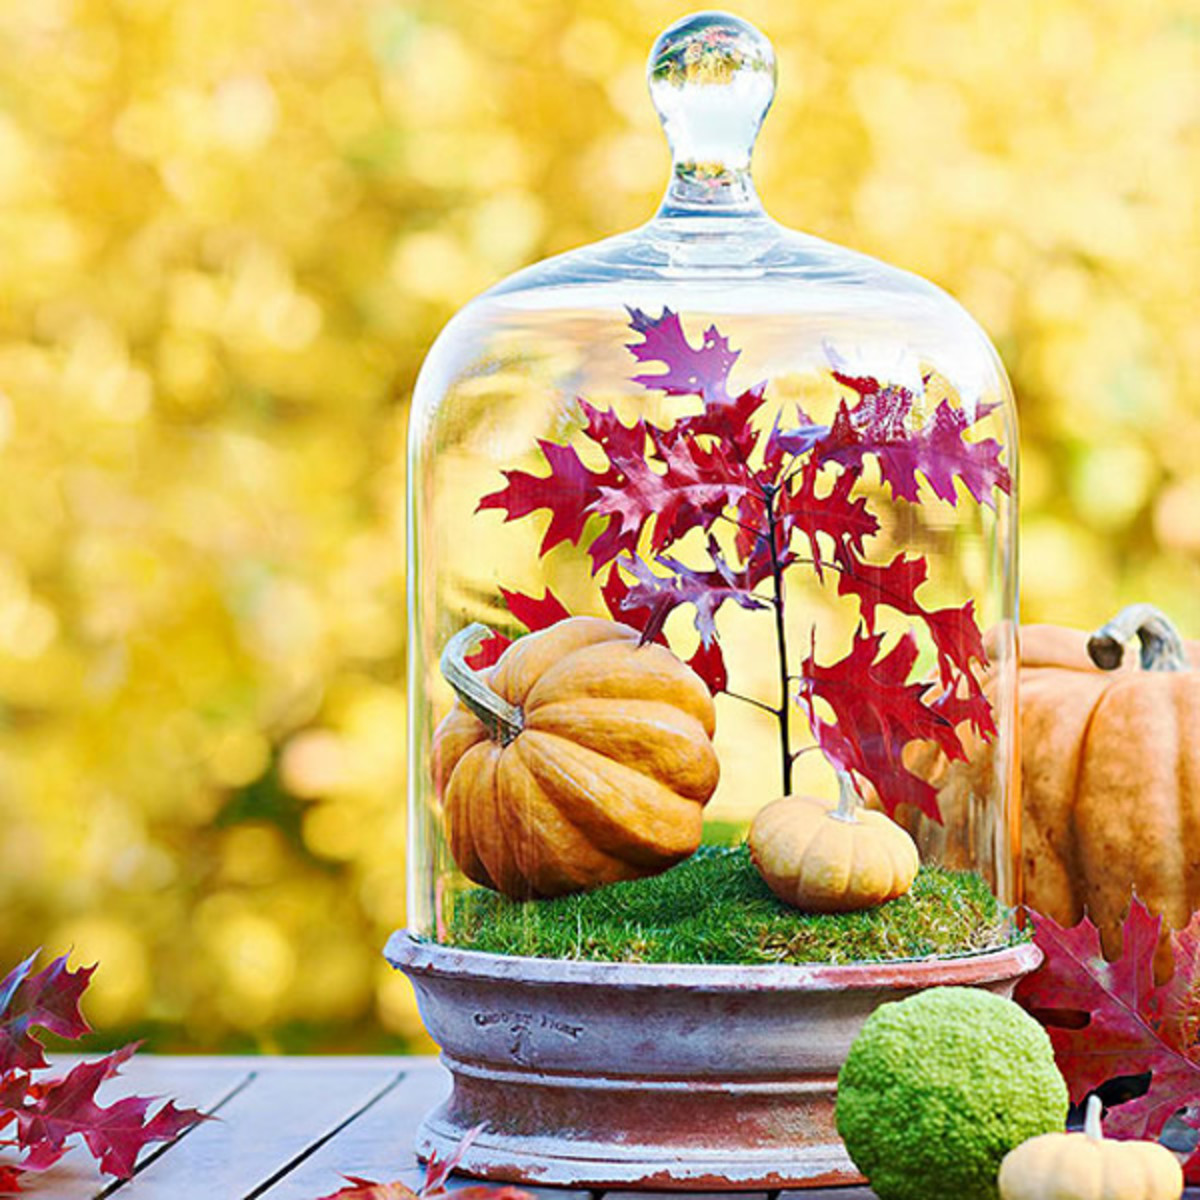 Fill a globe full of fall decorations, such as small pumpkins and colorful leaves.